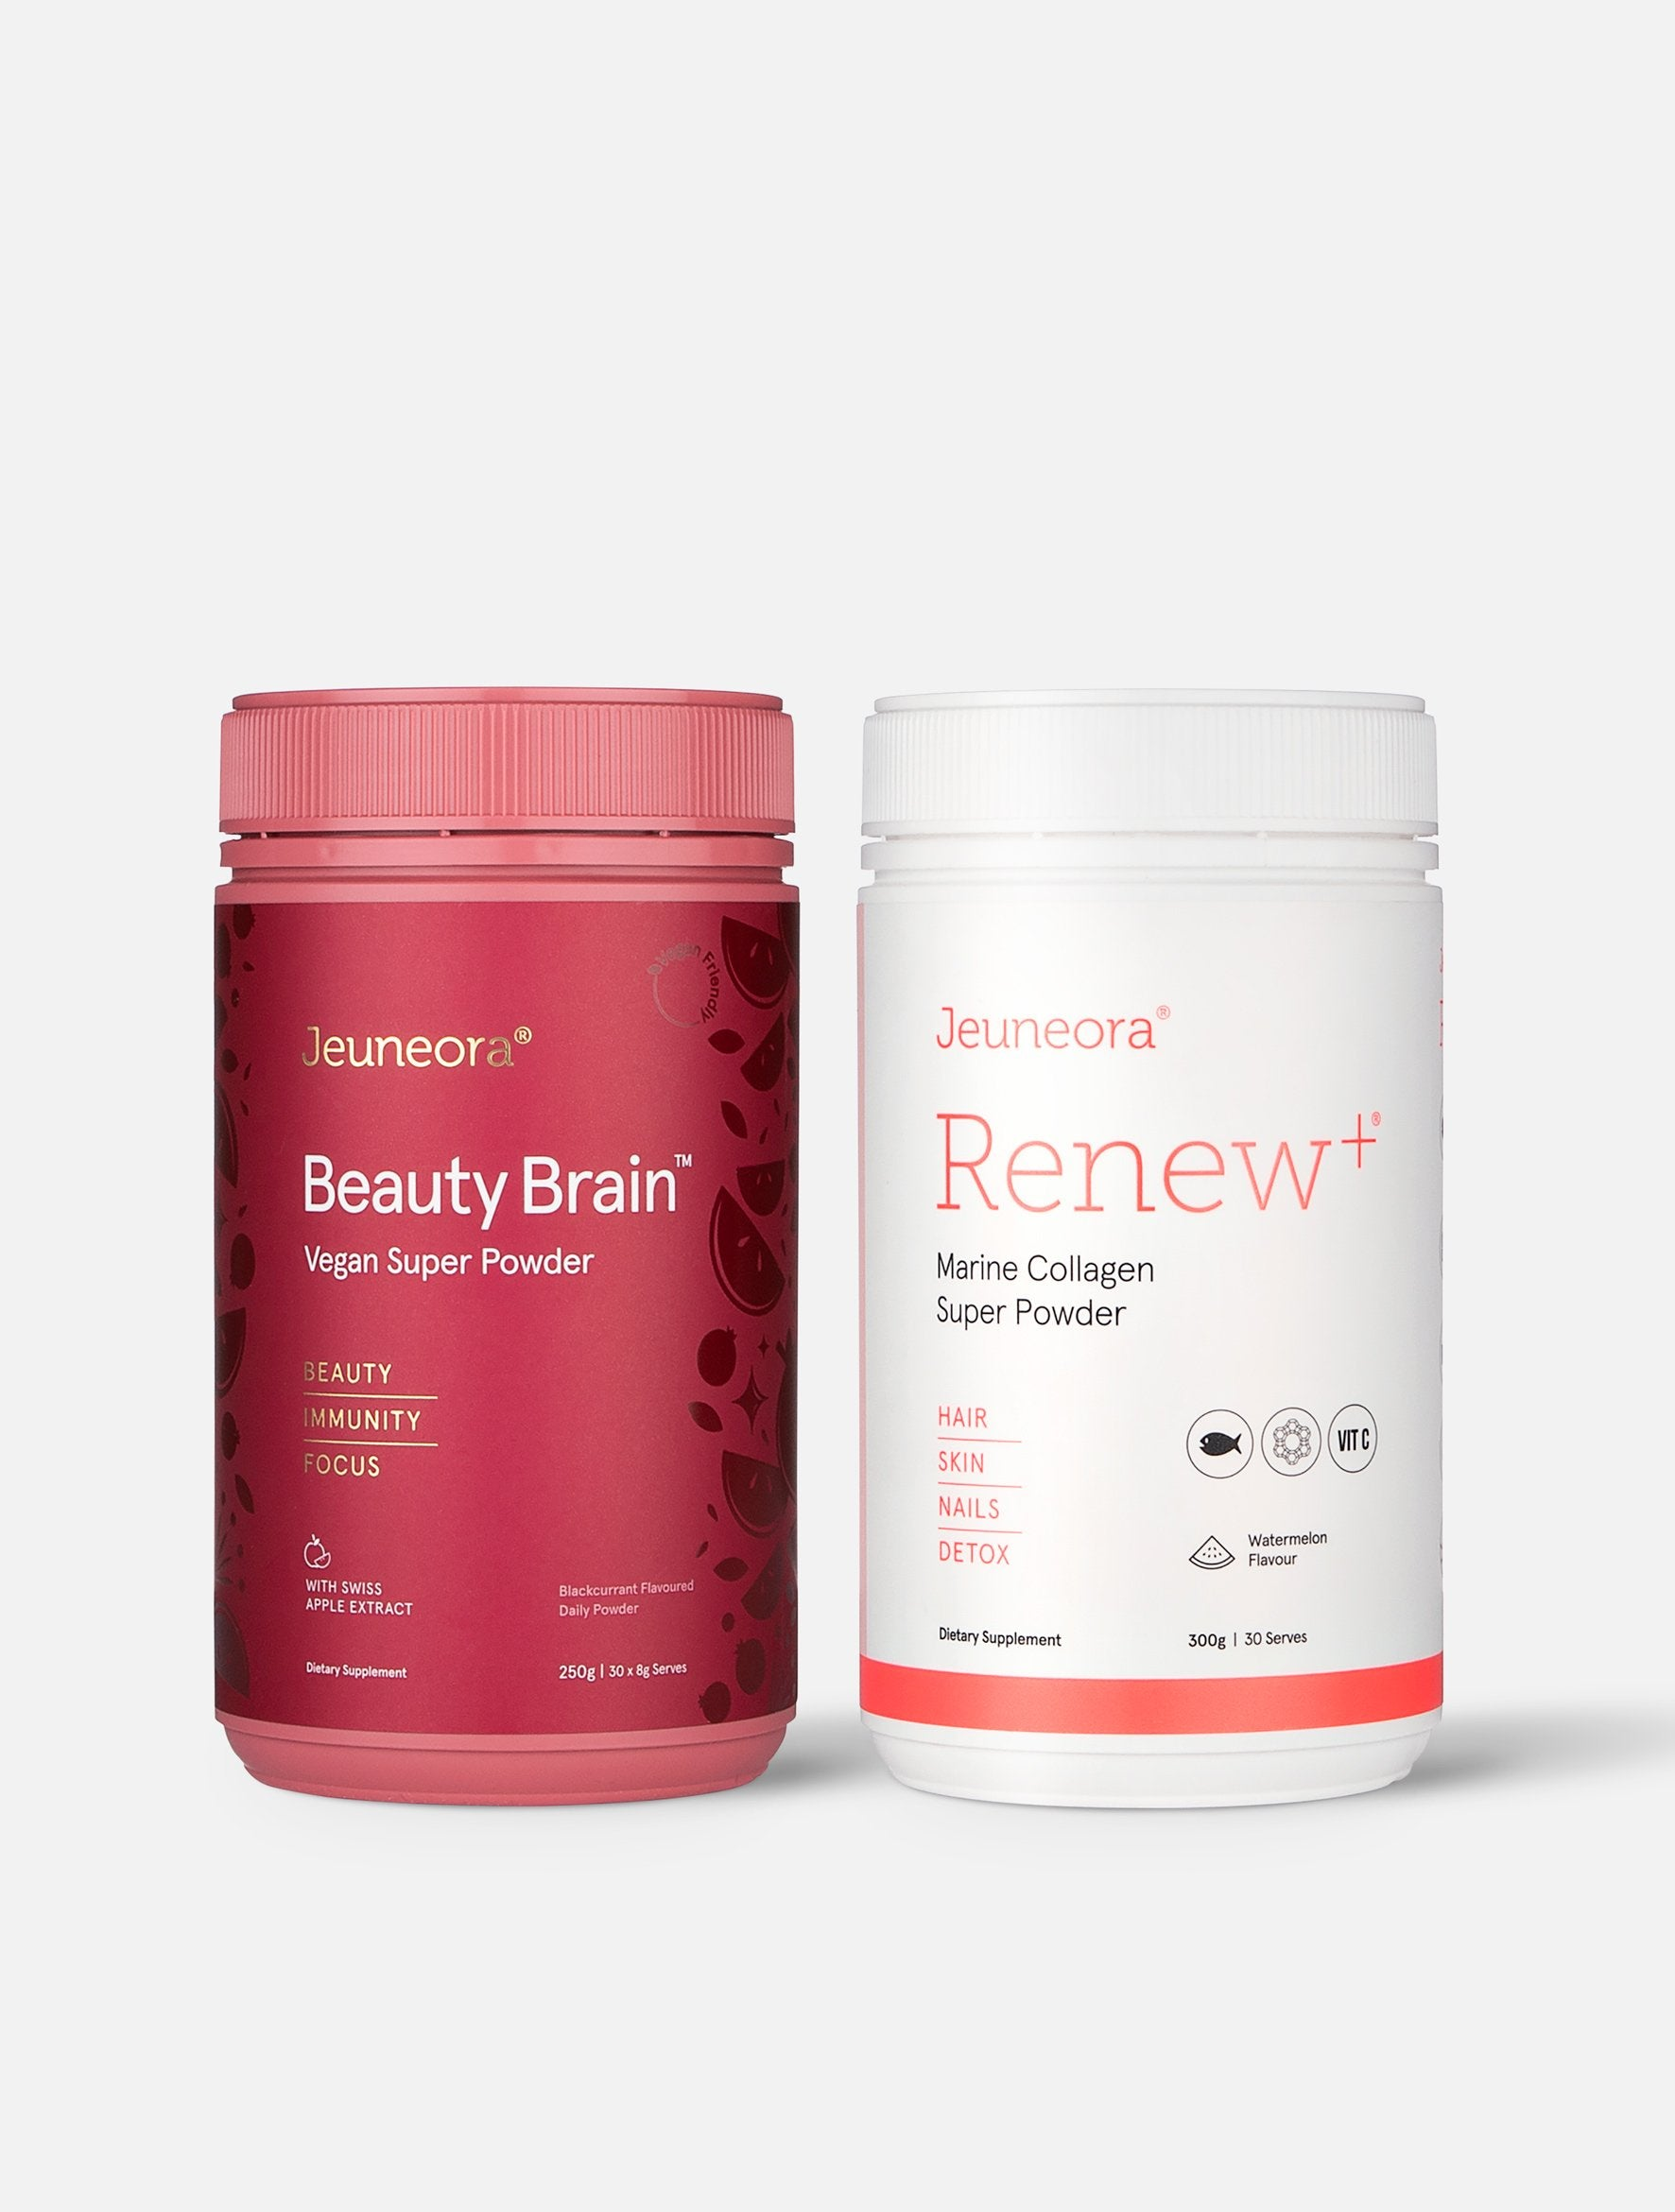 Jeuneora Renew+® and Beauty Brain™